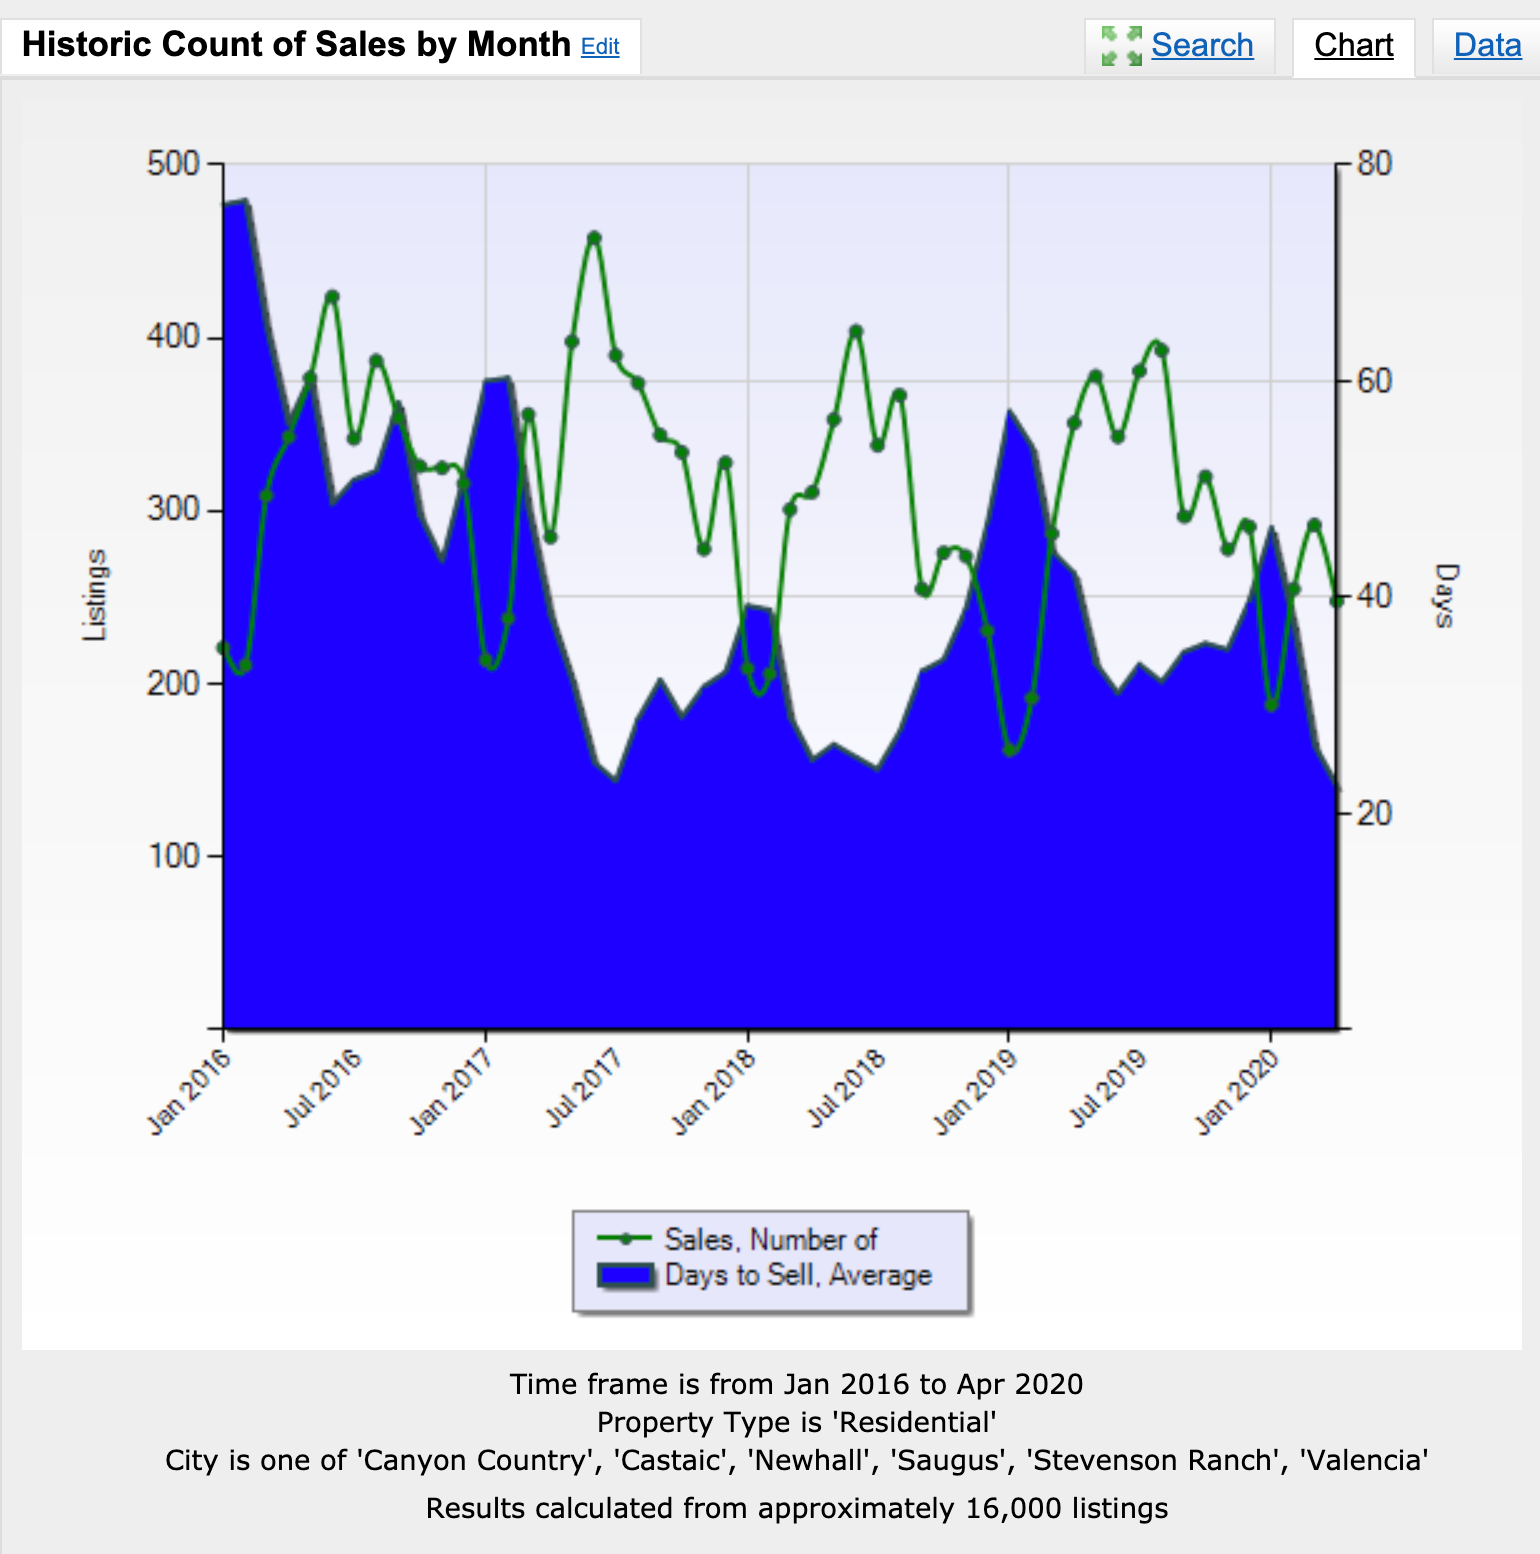 Santa Clarita sold residential listings during the past 4 years